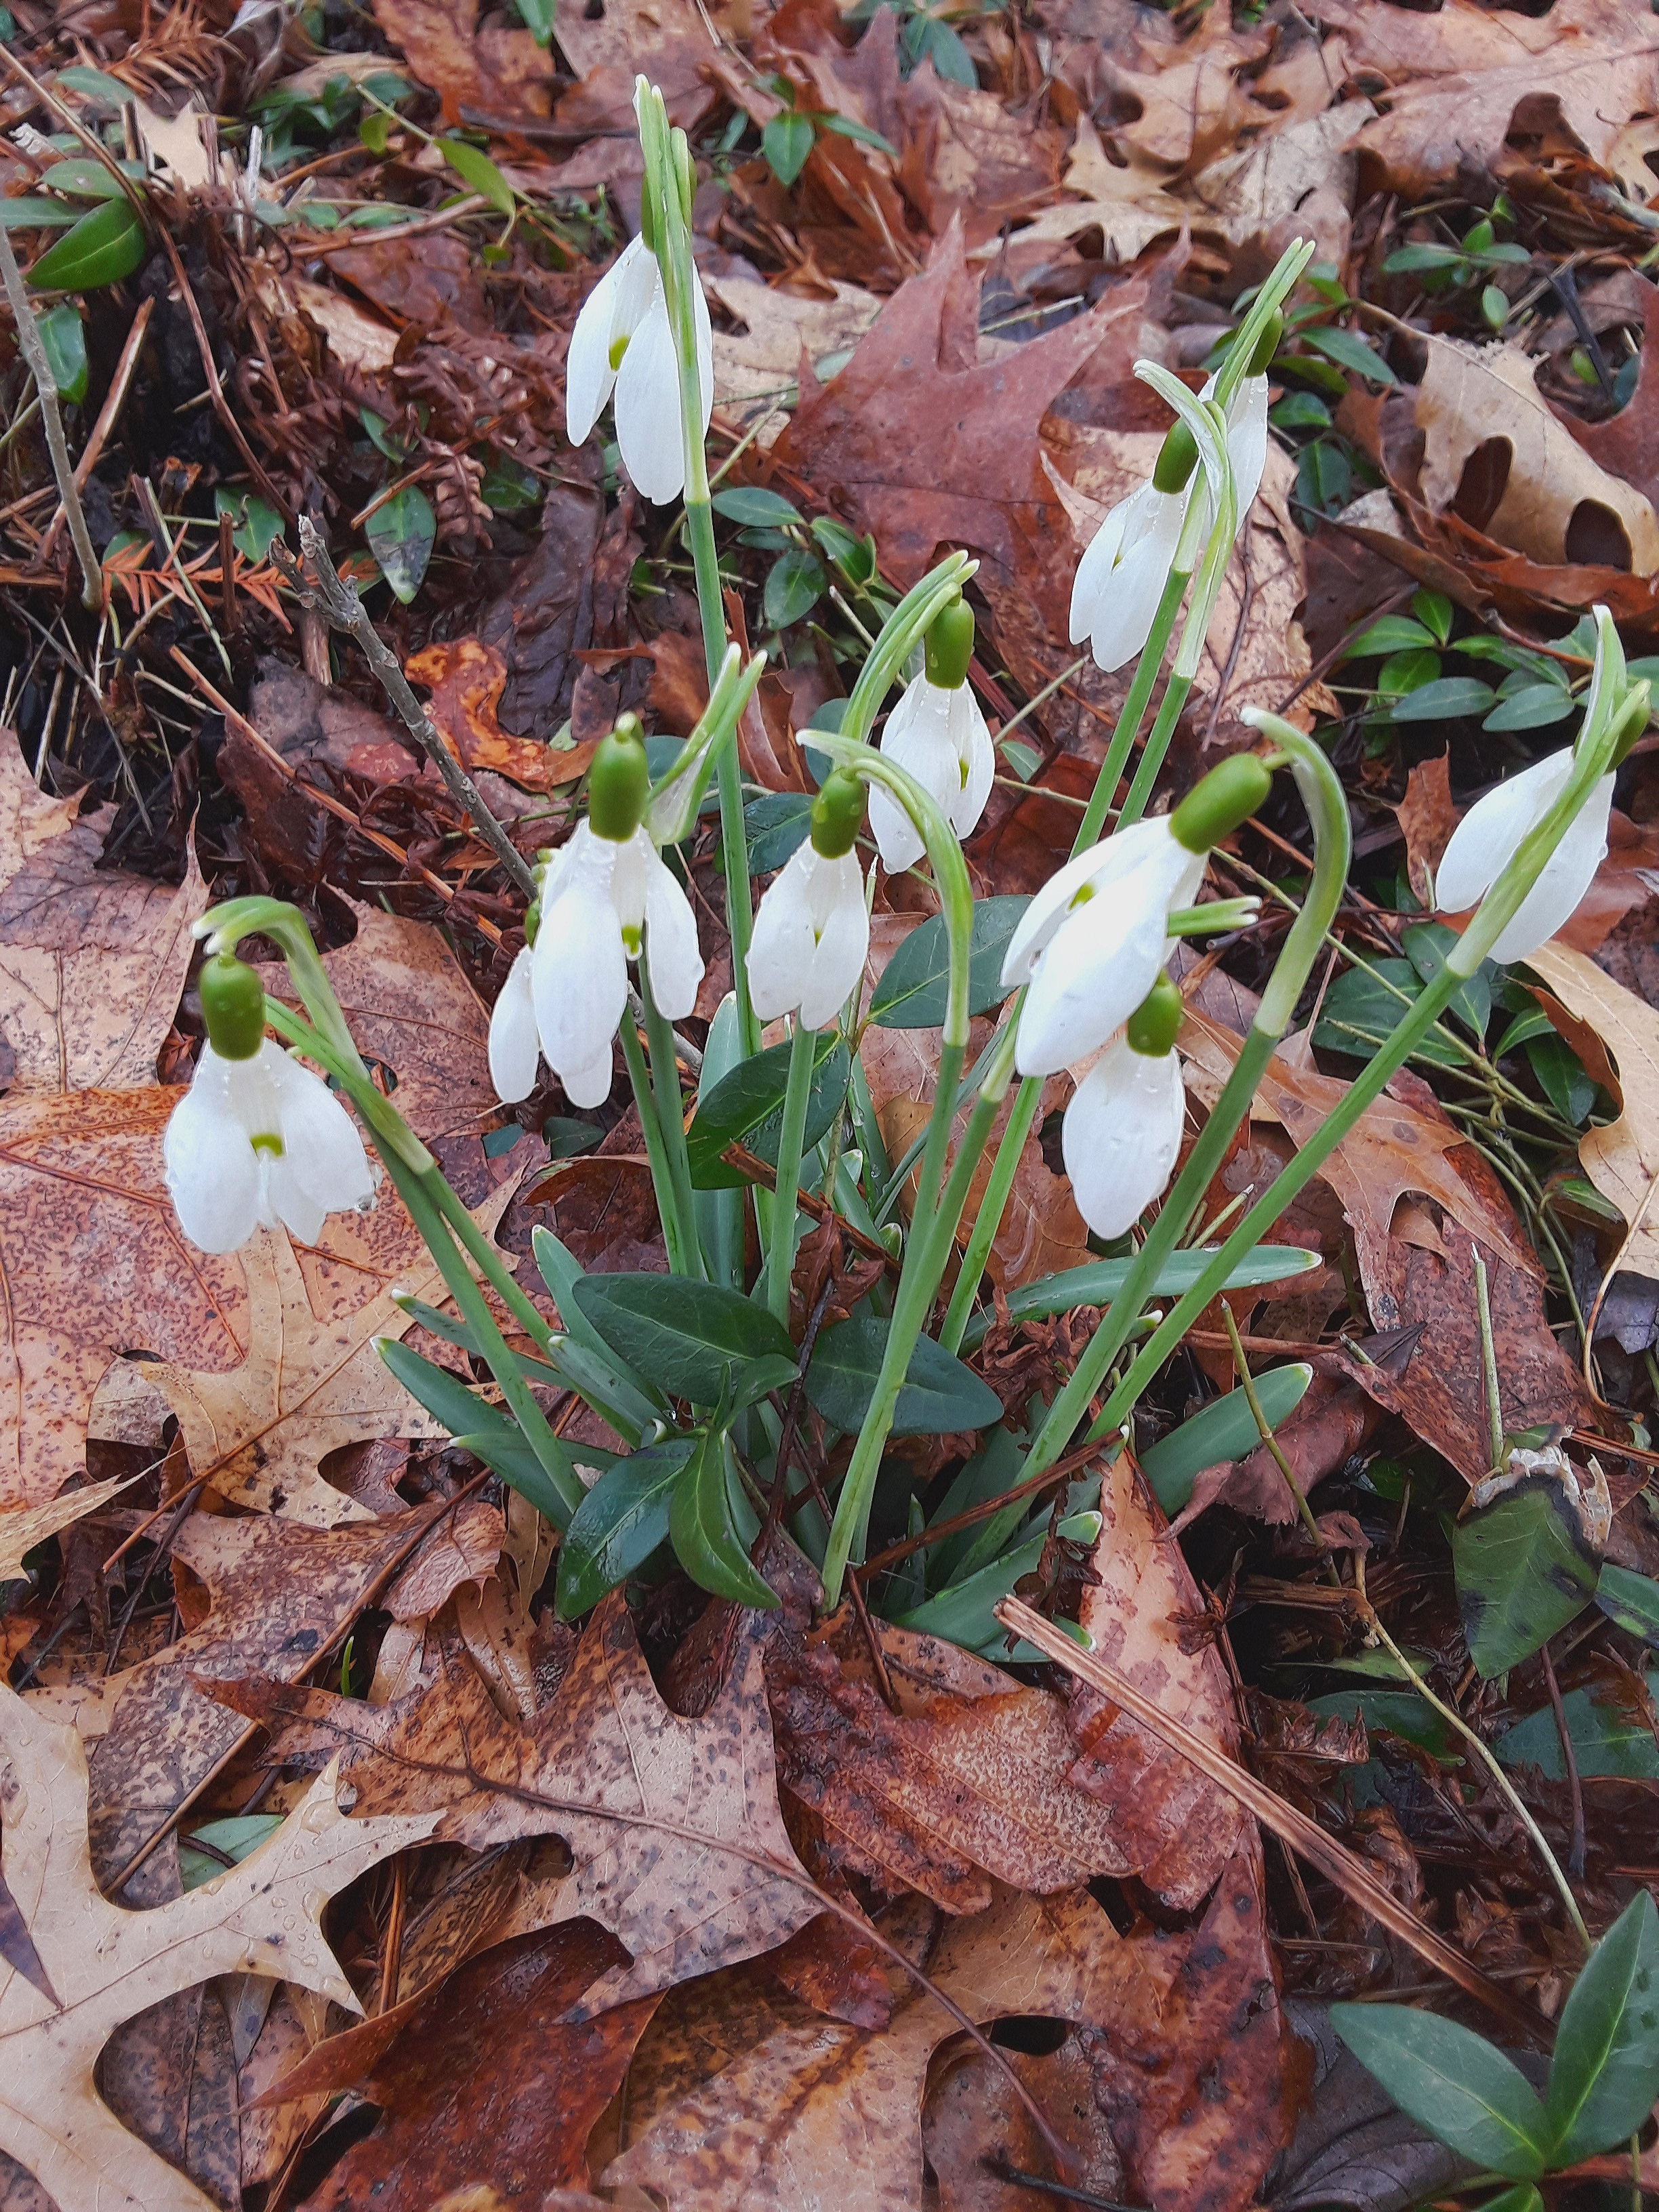 white snowdrop flowers push up through fallen oak leaves